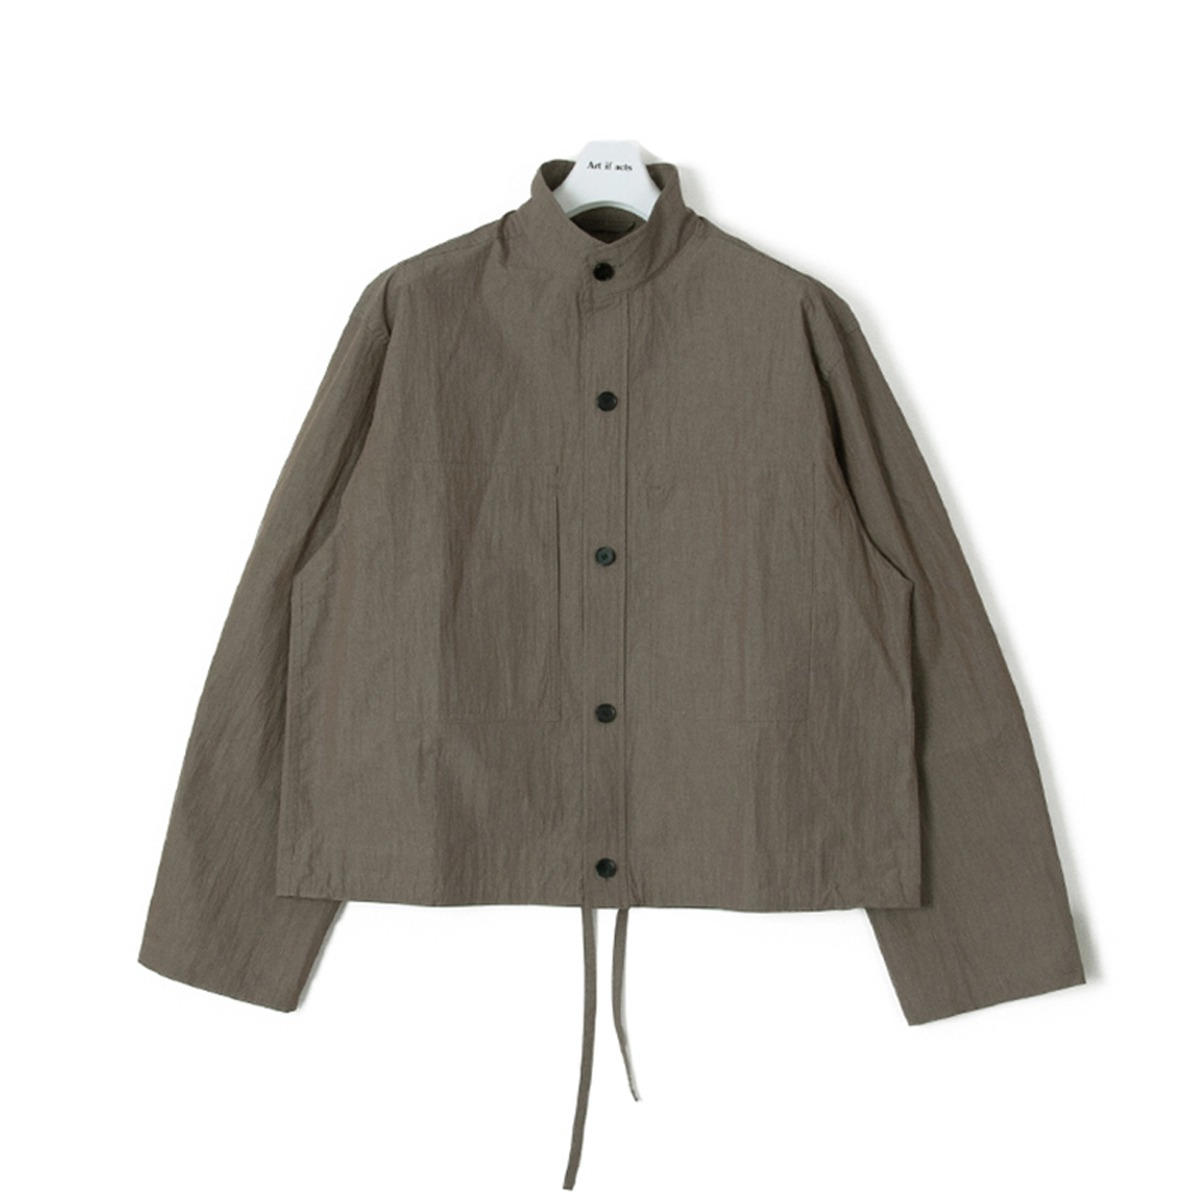 [ART IF ACTS] TWO POCKET STAND COLLAR SHIRTS 'KHAKI'